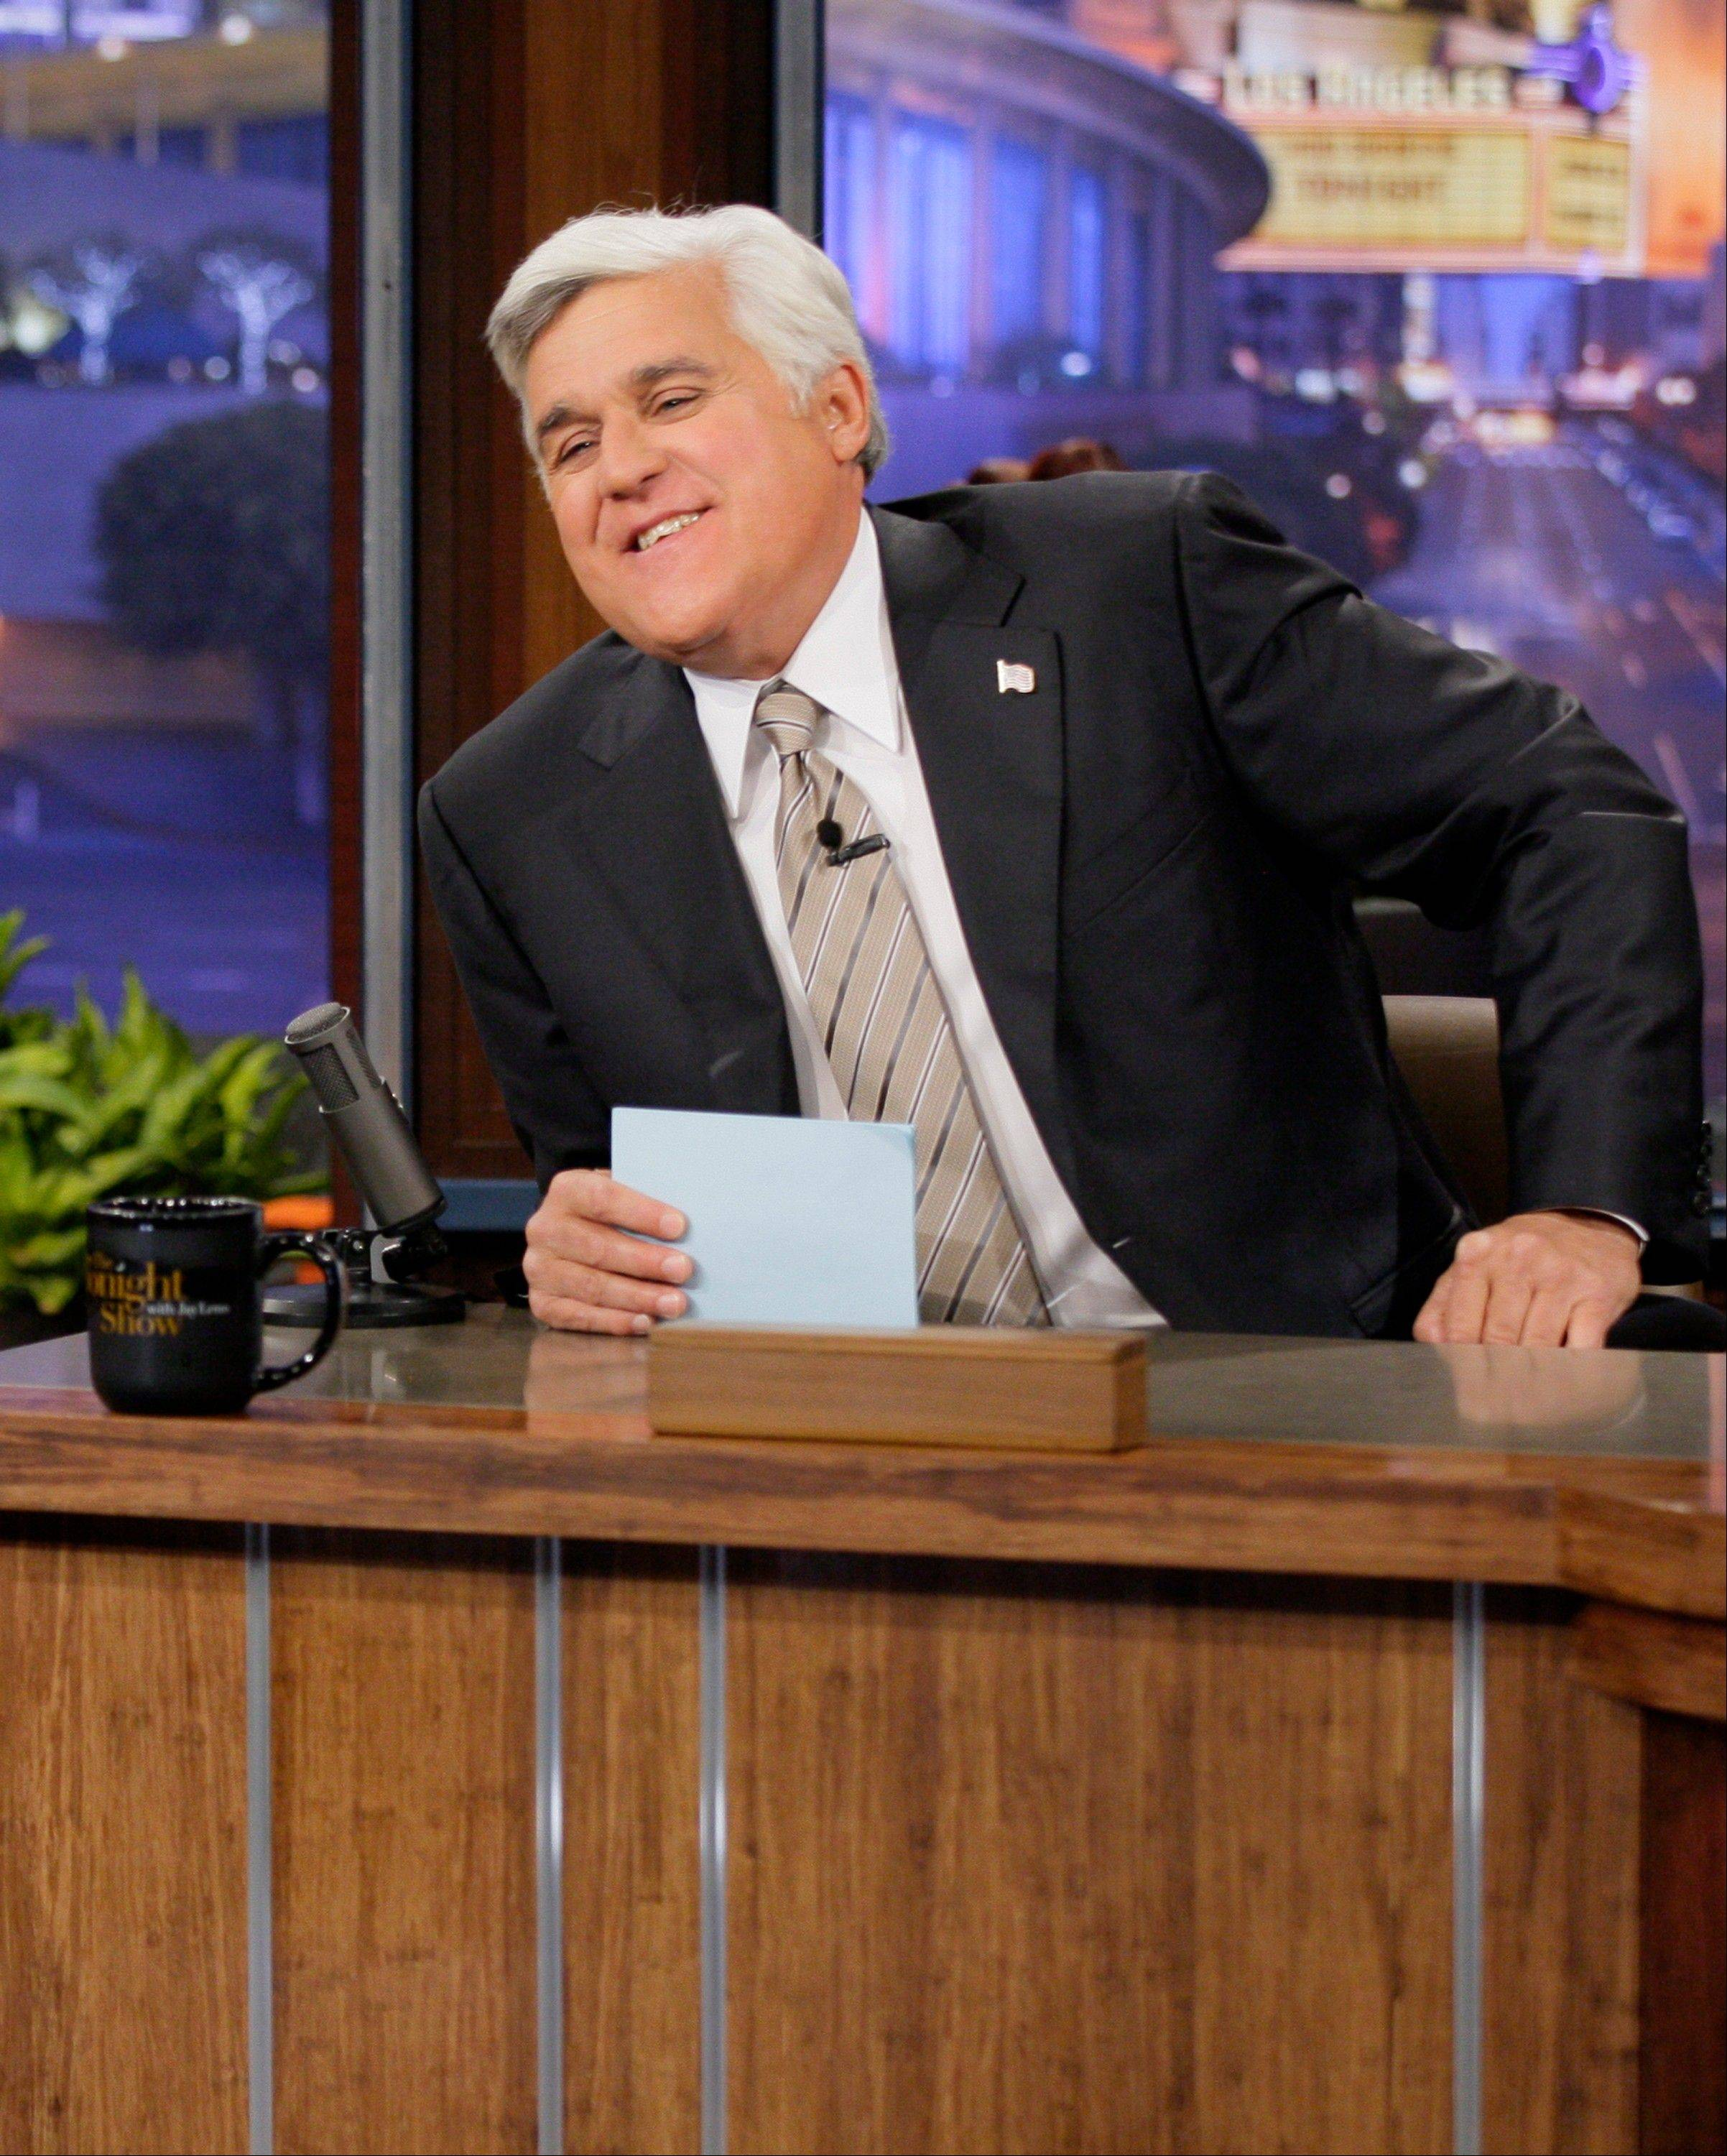 "Jay Leno, host of ""The Tonight Show with Jay Leno,"" on the set in Burbank, Calif. NBC announced Wednesday, April 3, 2013 that Jimmy Fallon is replacing Jay Leno as the host of ""The Tonight Show"" in spring 2014."